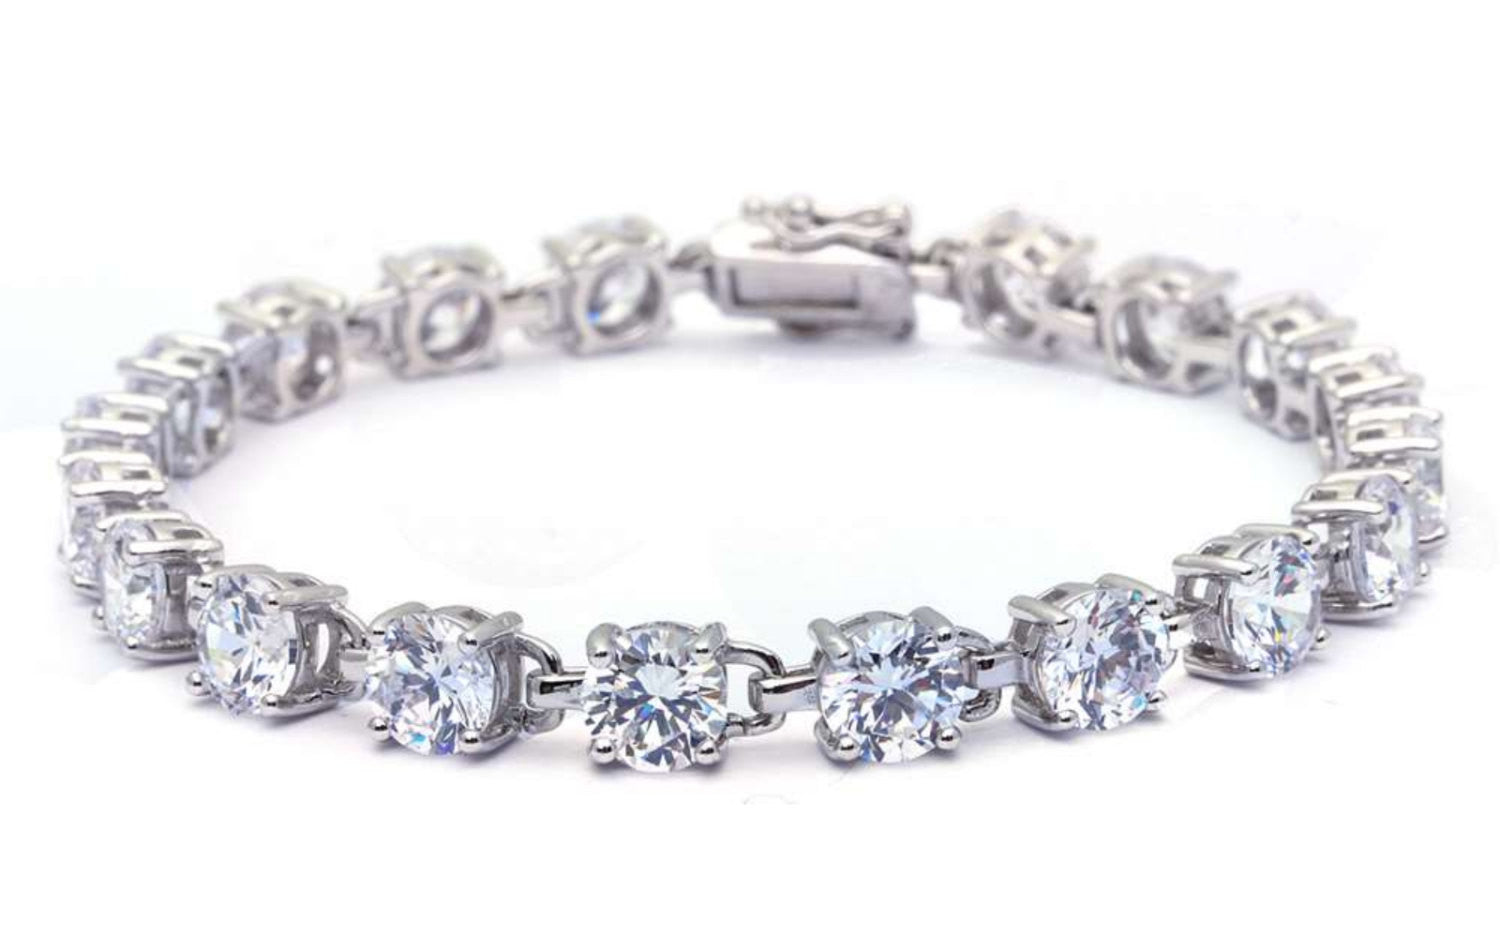 Tennis Bracelet 16.5 Carat Round Cut Clear Diamond White CZ Solid 925 Sterling Silver Solitaire Wedding Engagement Tennis Bracelet Top Gift - Blue Apple Jewelry